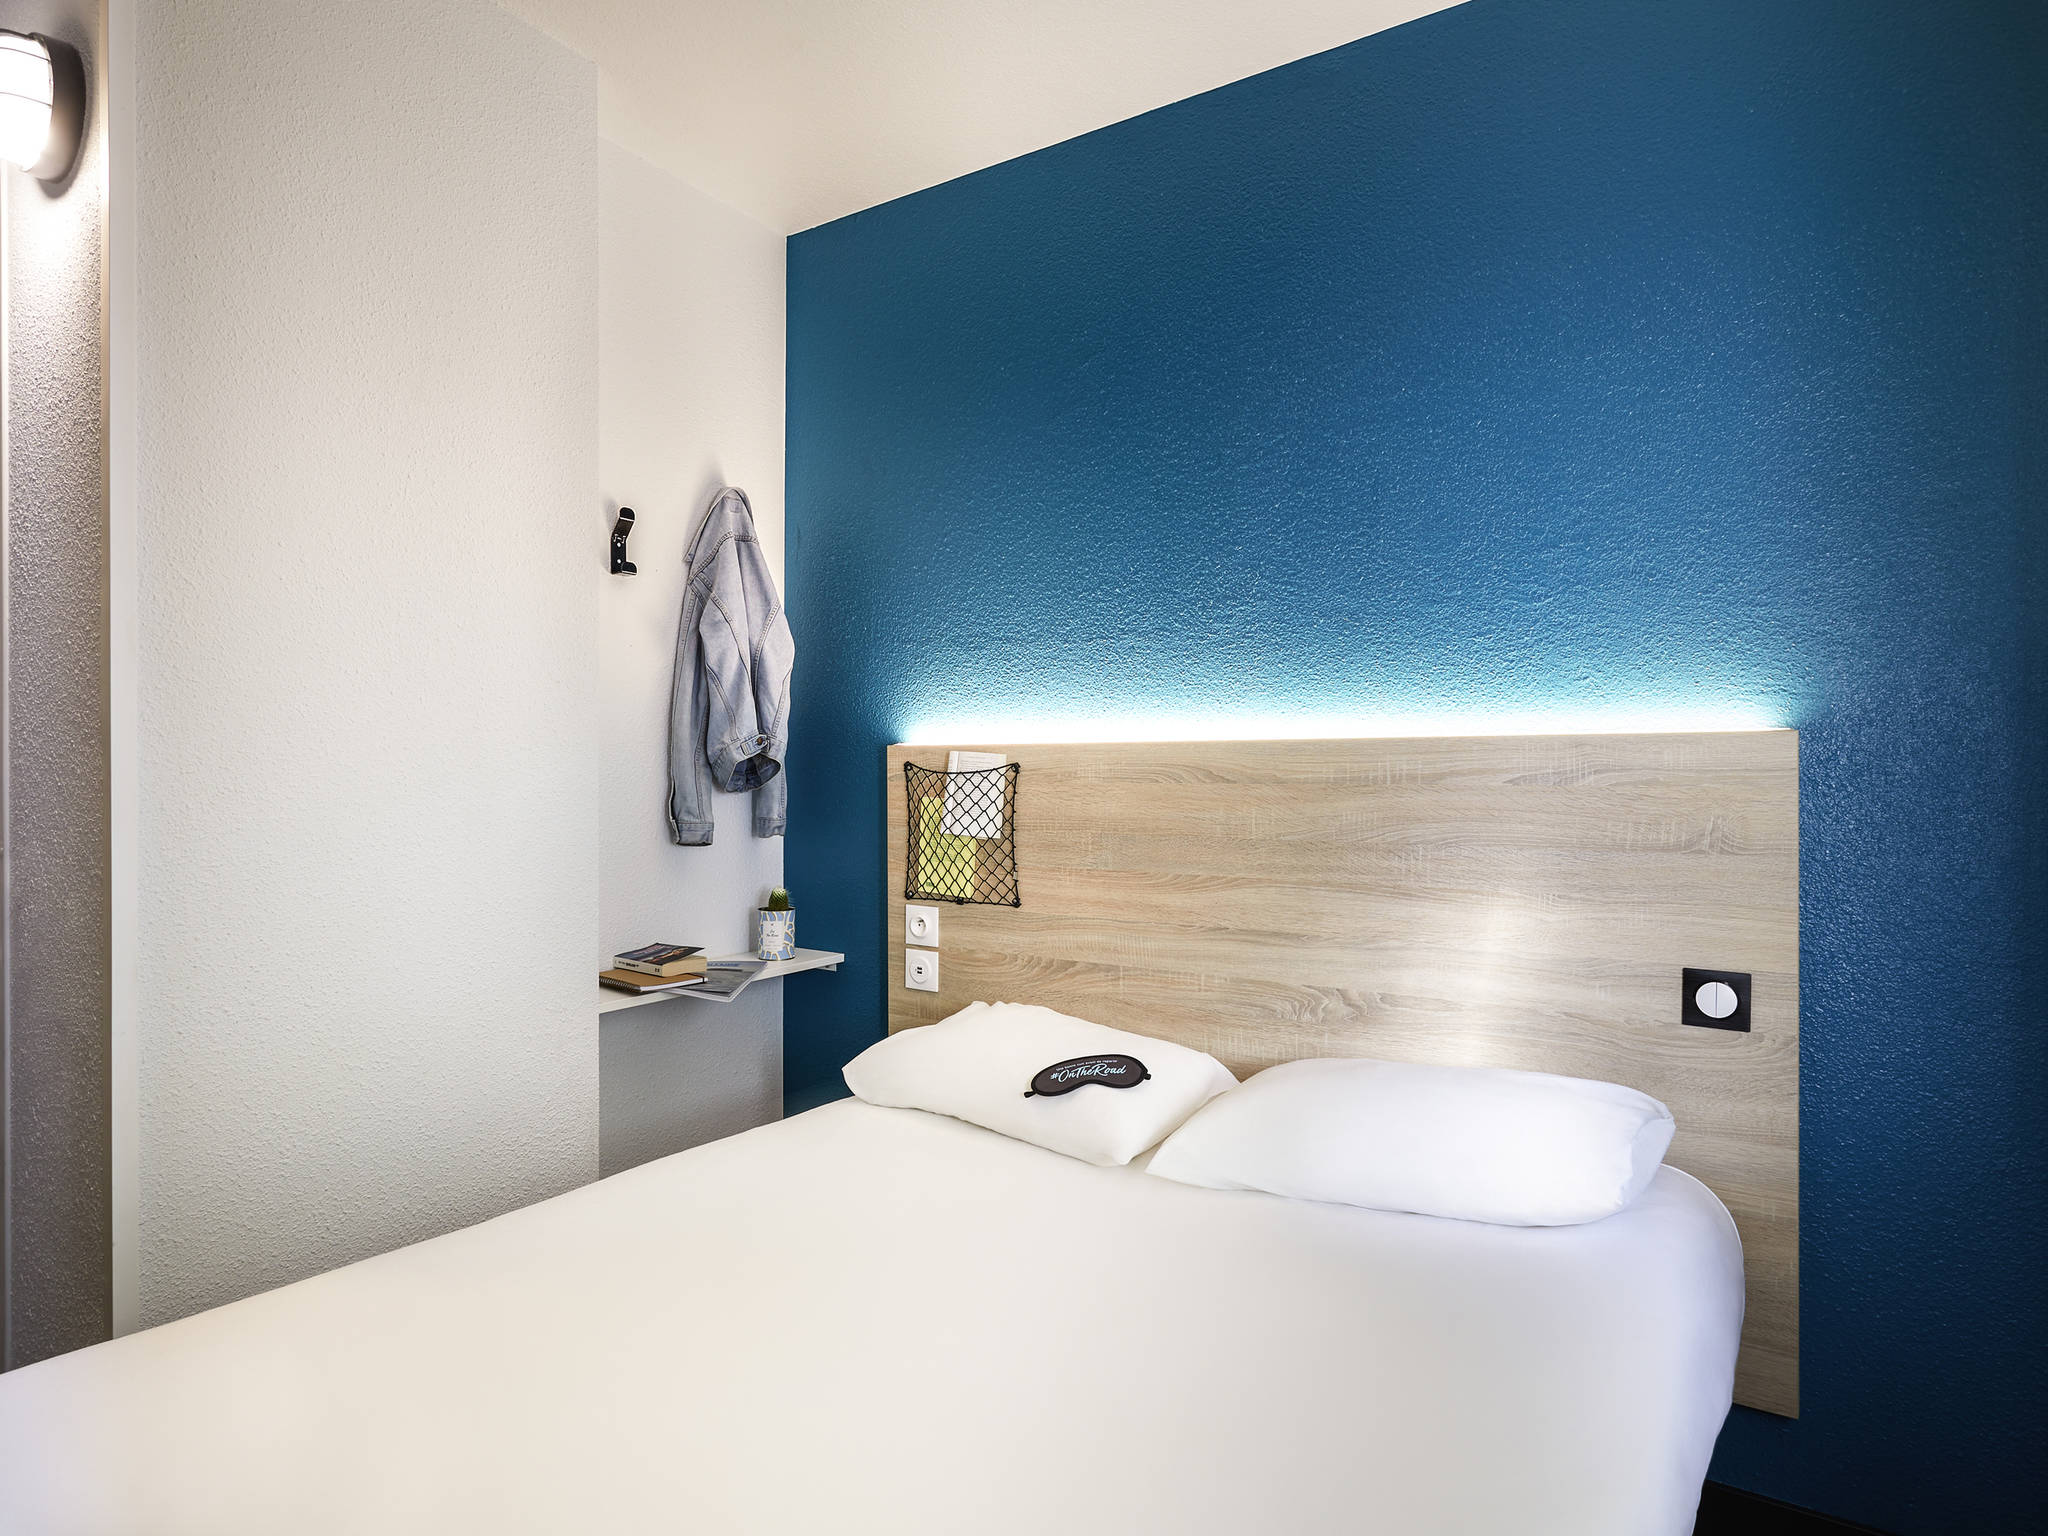 Hotel in ennetieres en weppes hotelf1 lille englos for Prix chambre hotel formule 1